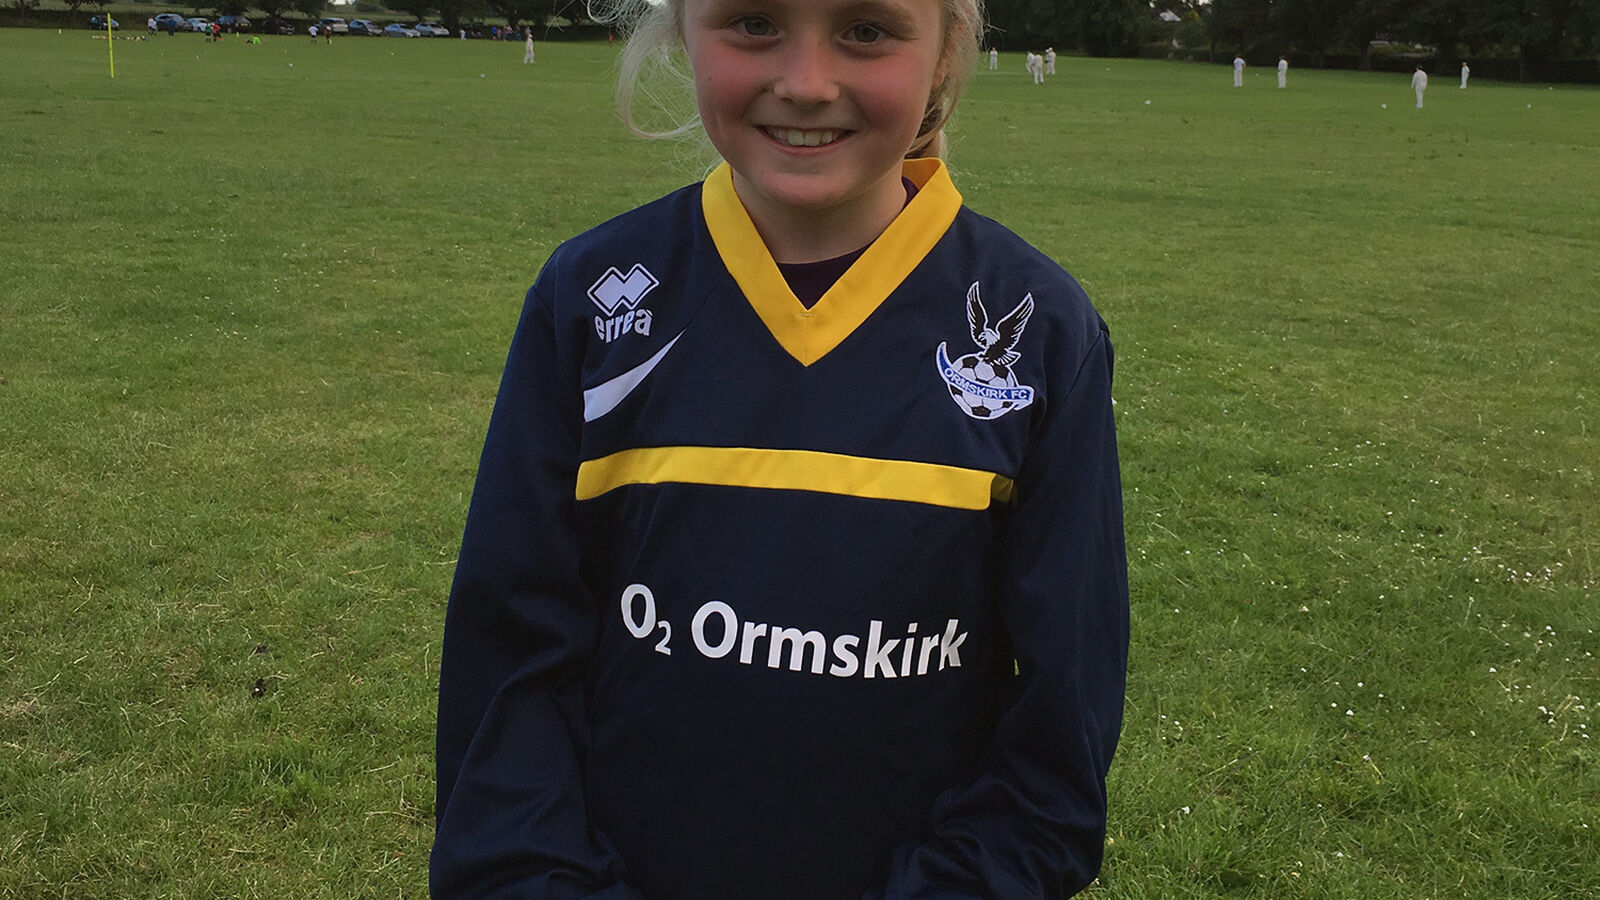 Ormskirk FC U9s Player Signs for Blackburn Rovers Ladies